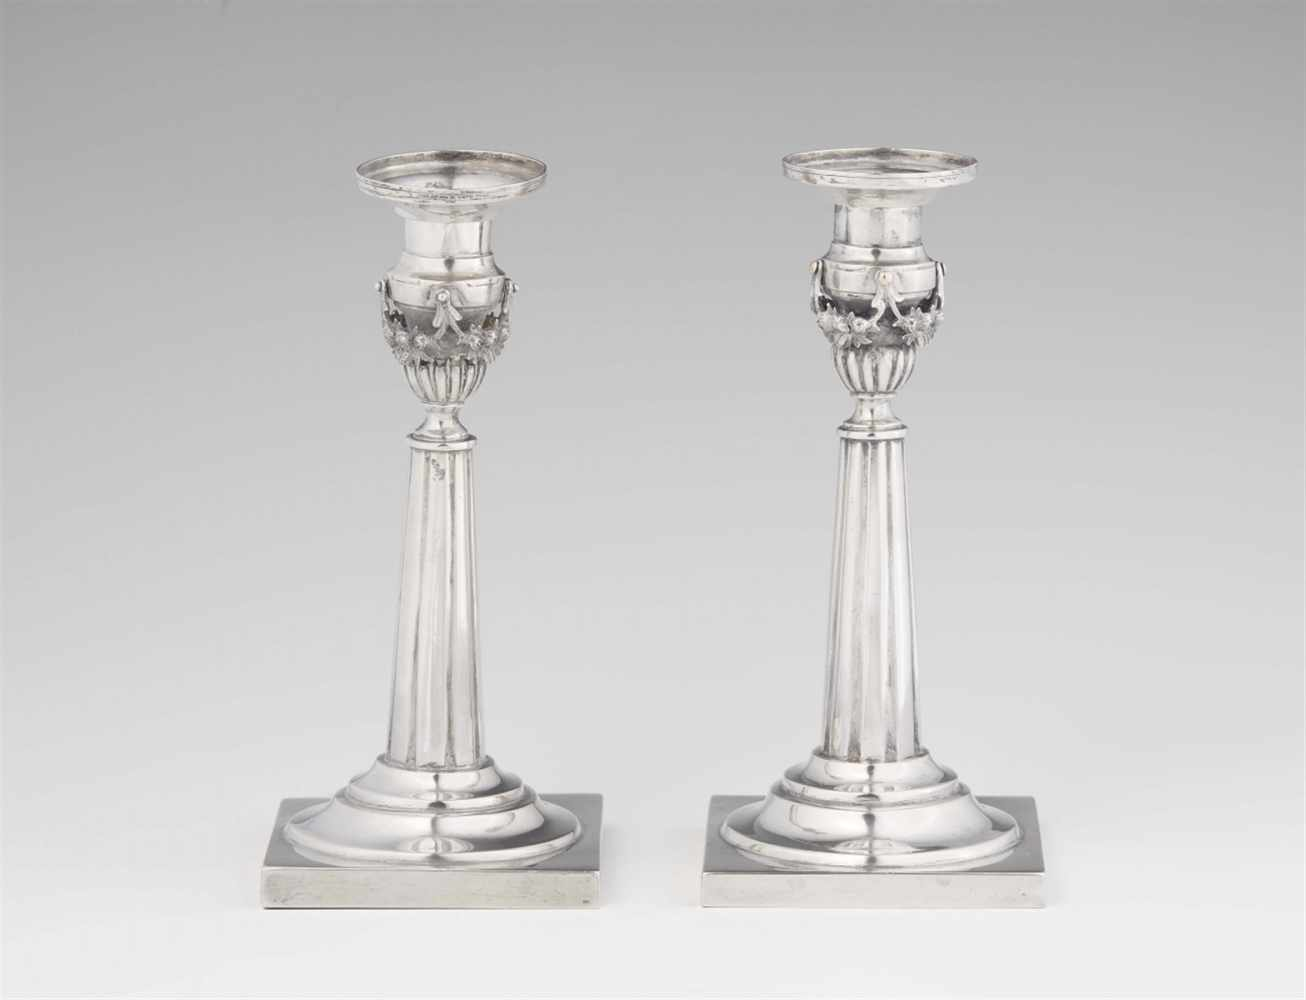 Lot 355 - A pair of Weißenfels silver candlesticksTapering fluted shafts resting on square plinths. H 18 cm,